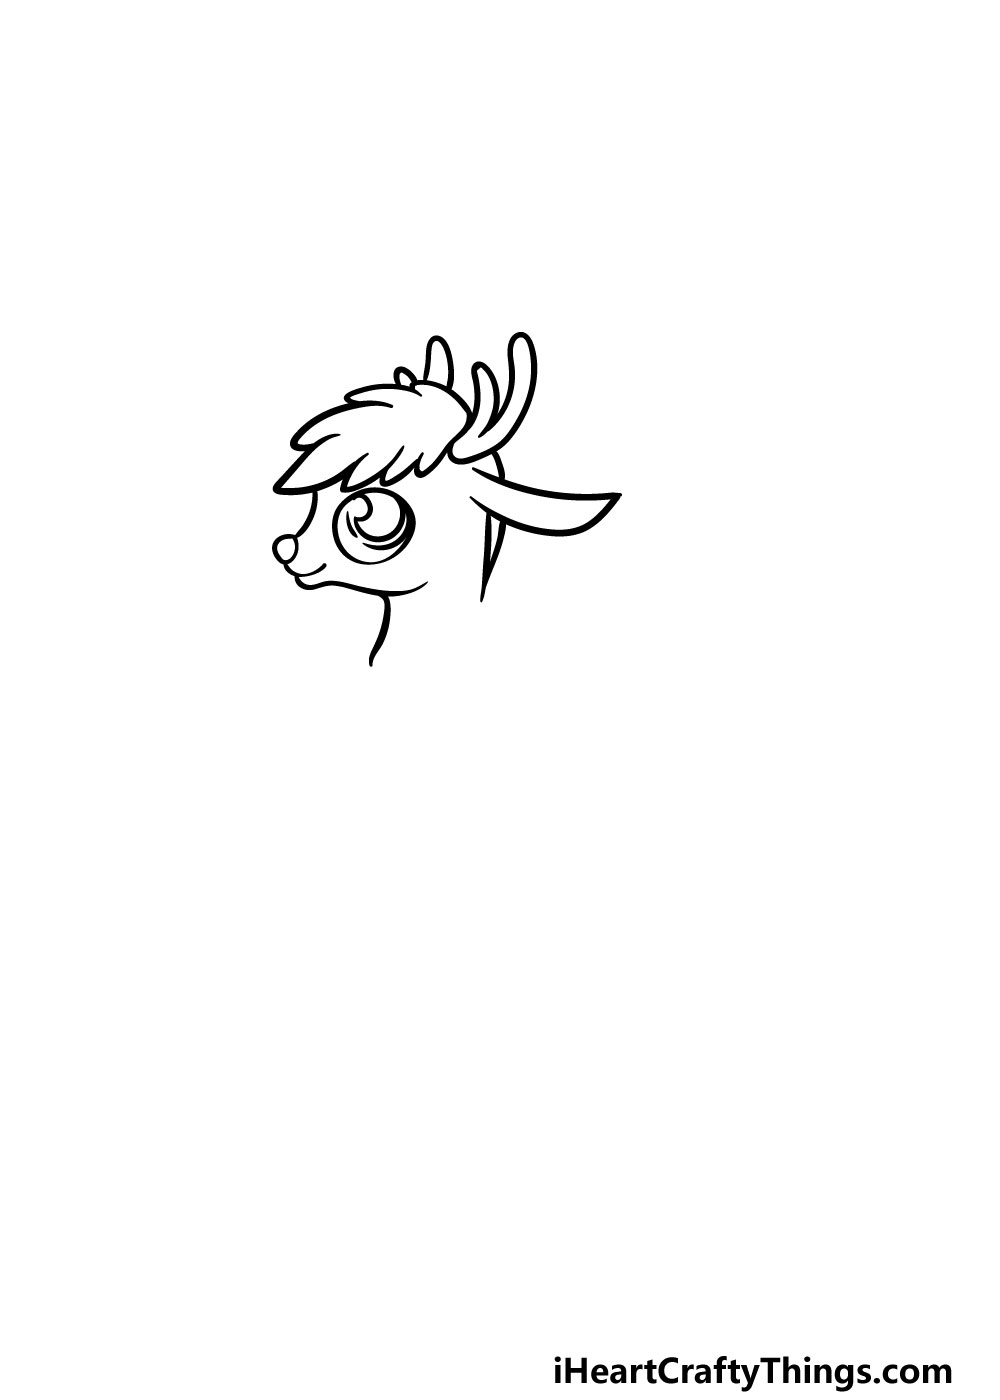 drawing Rudolph step 1